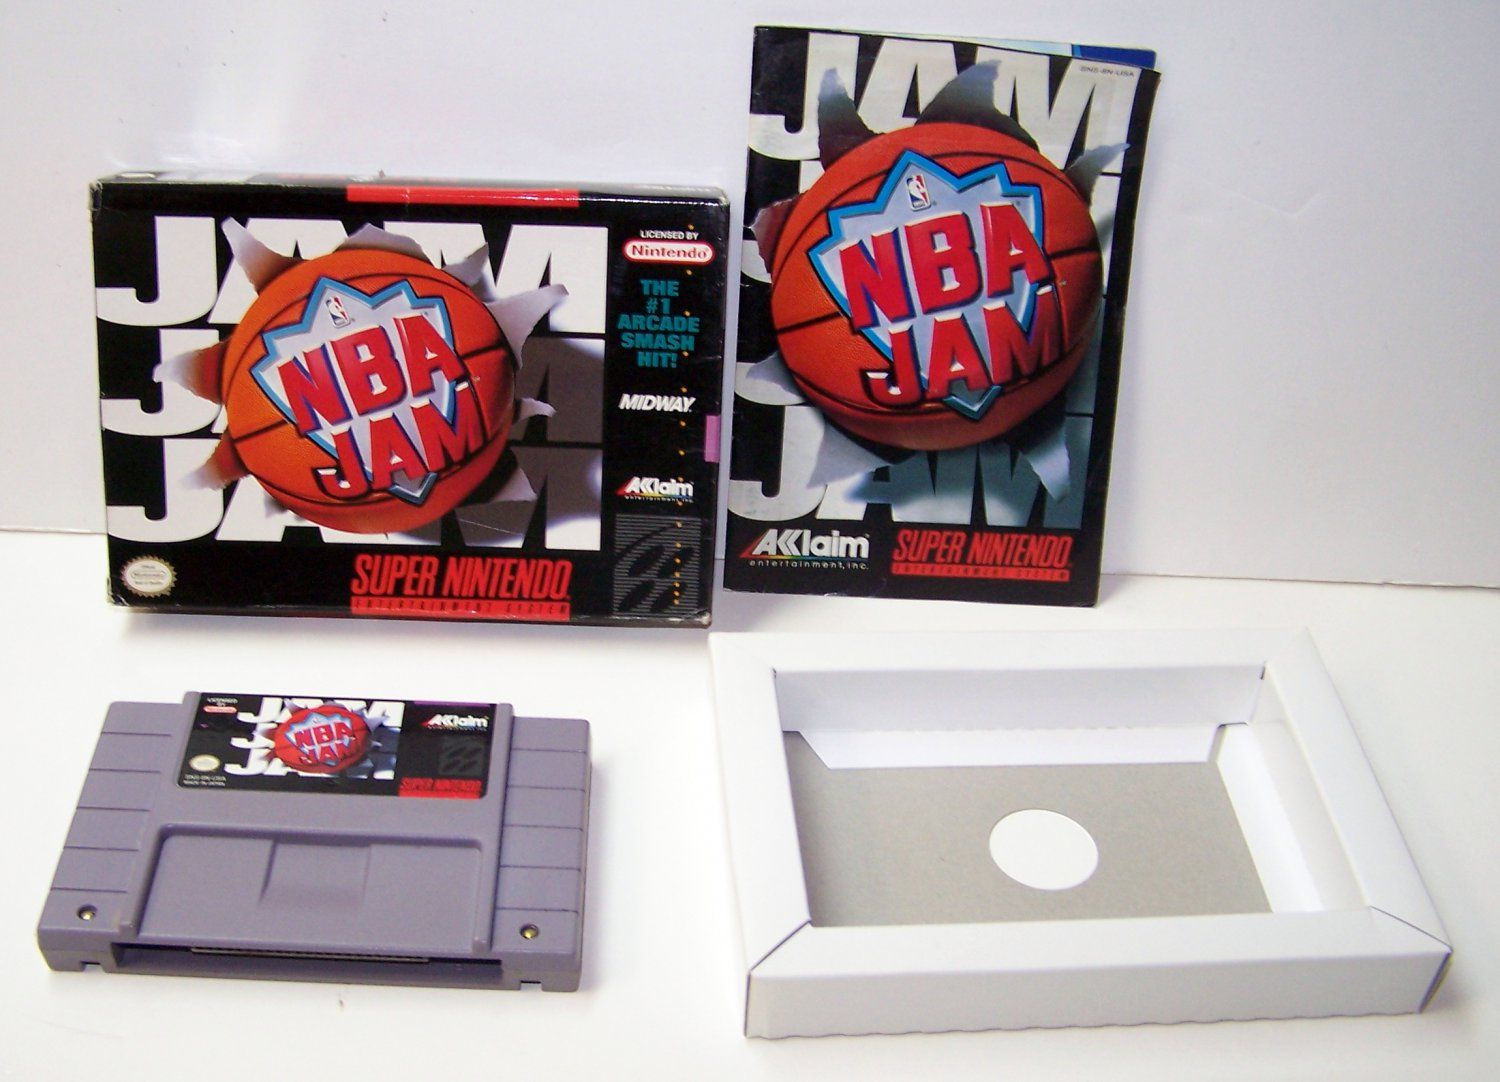 NBA Jam Super Nintendo Game